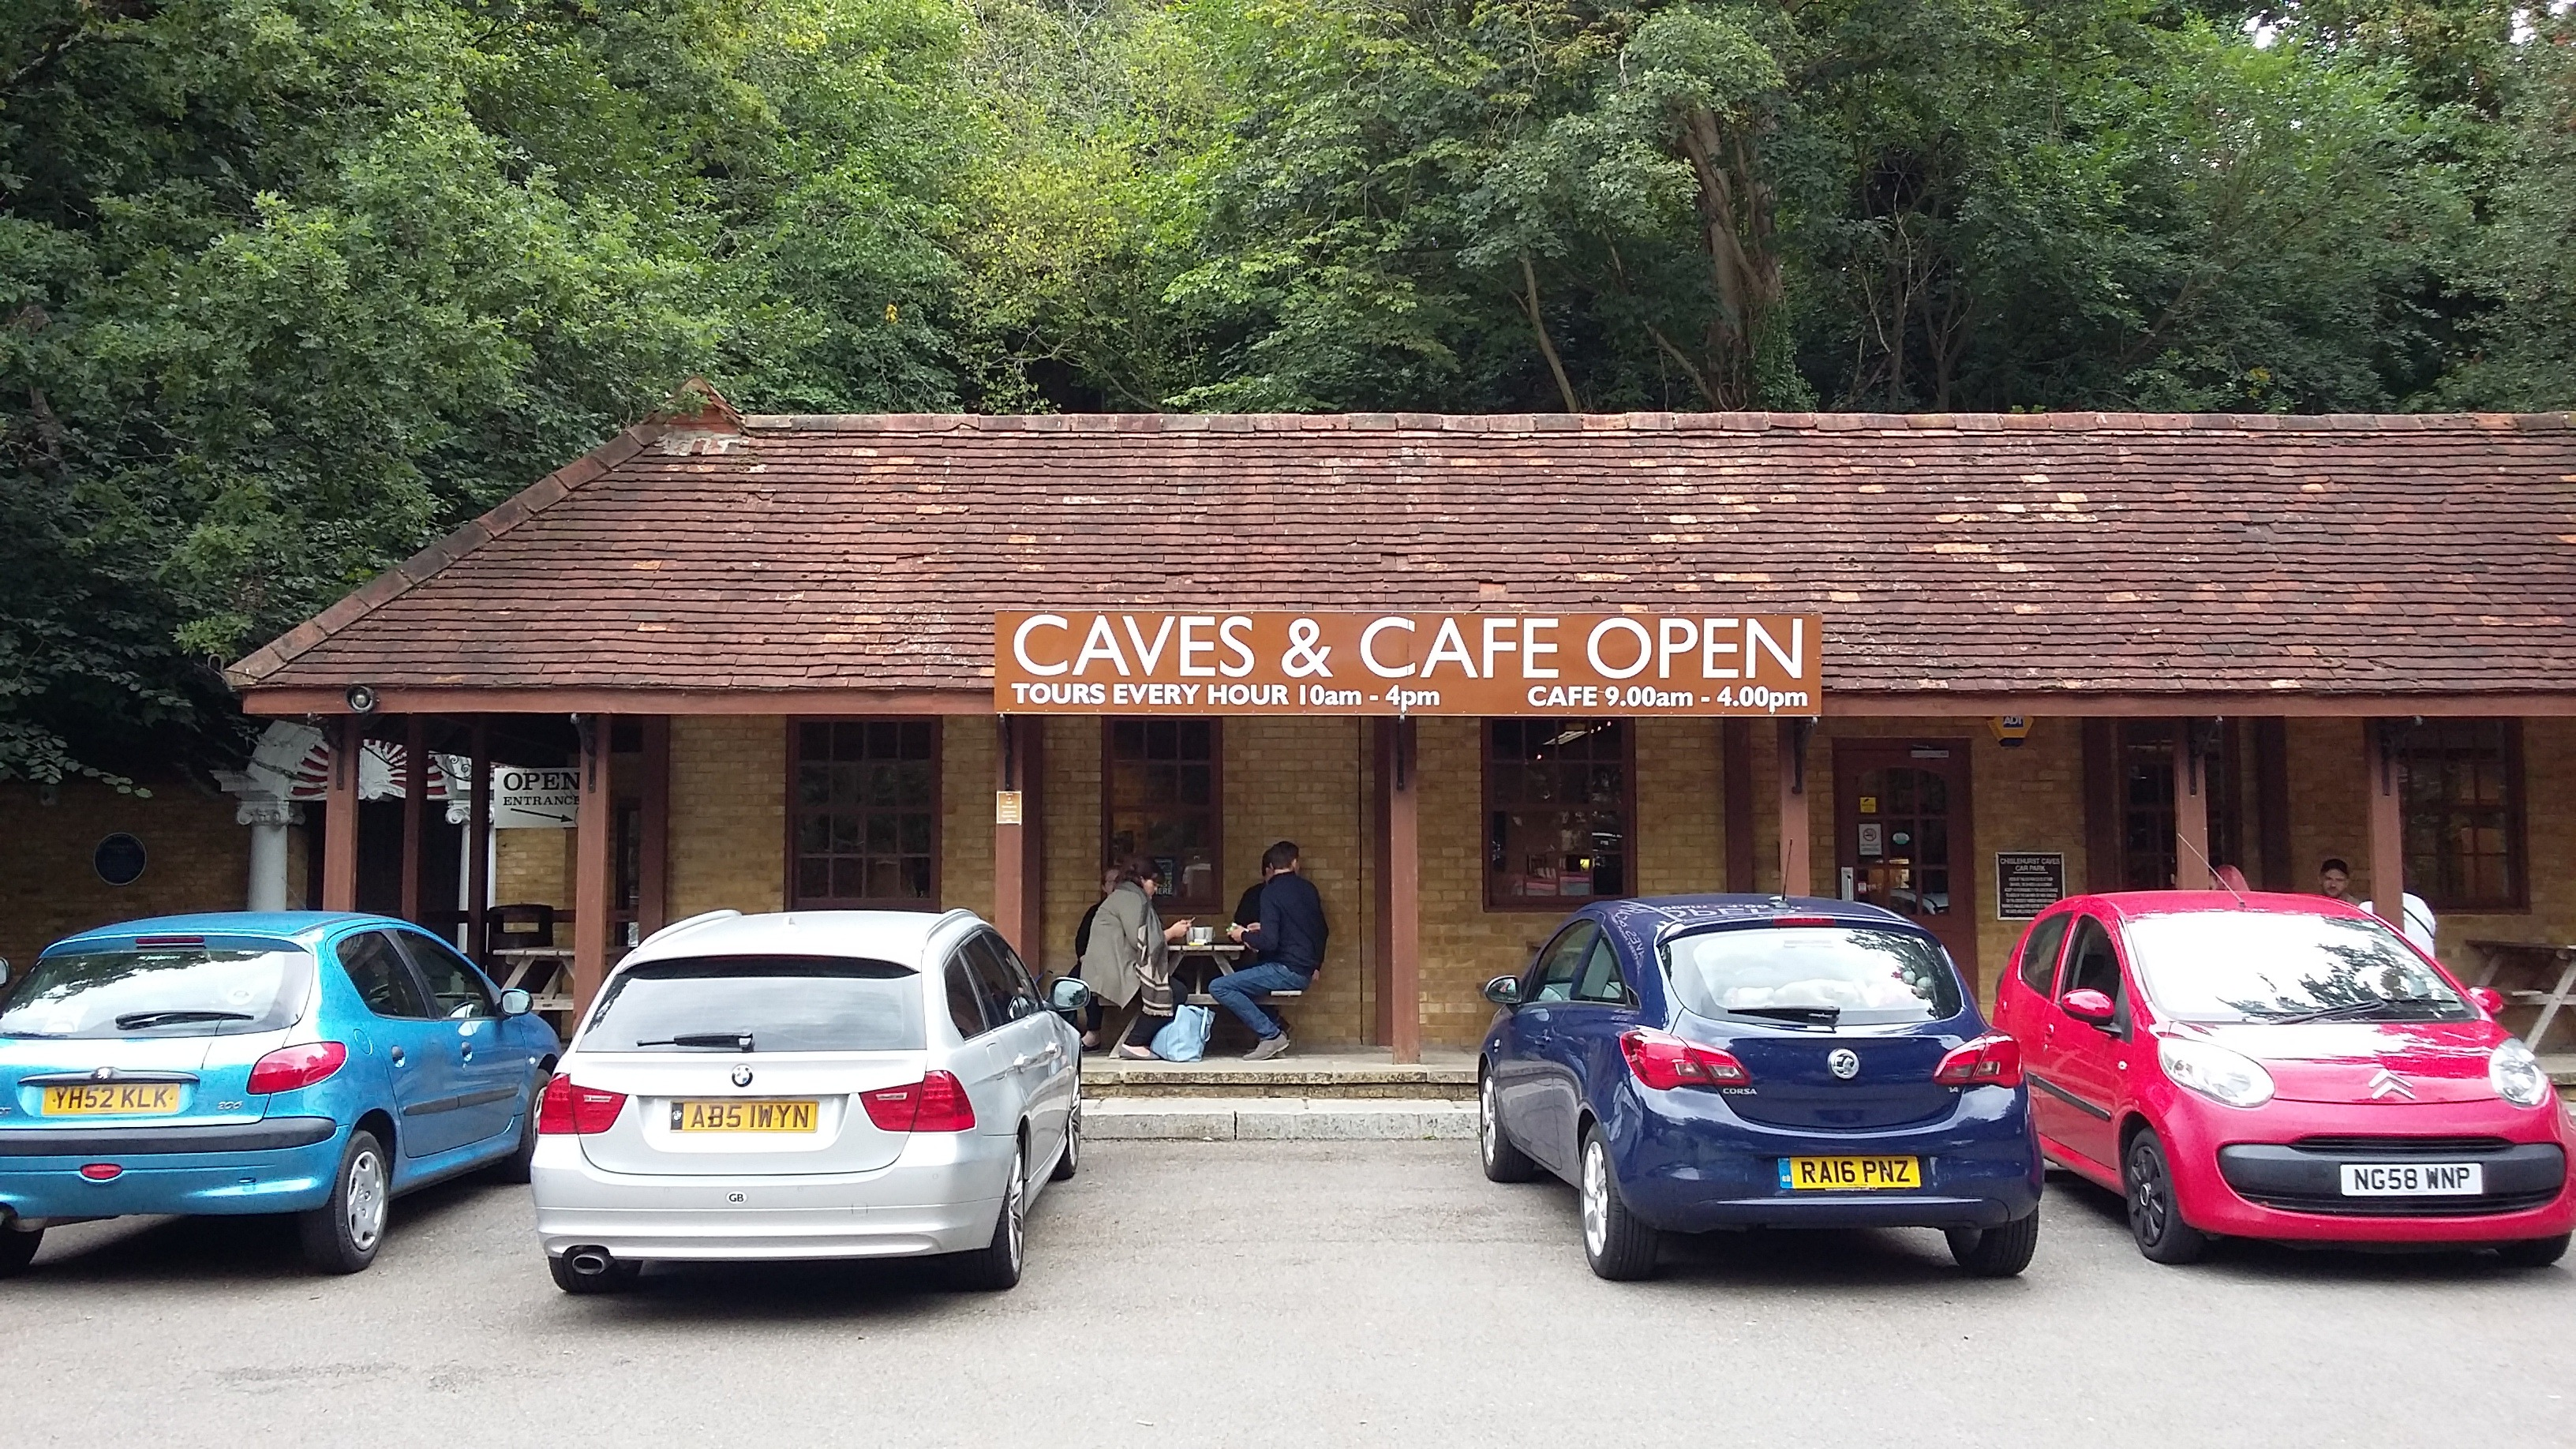 Chislehurst Caves Entrance